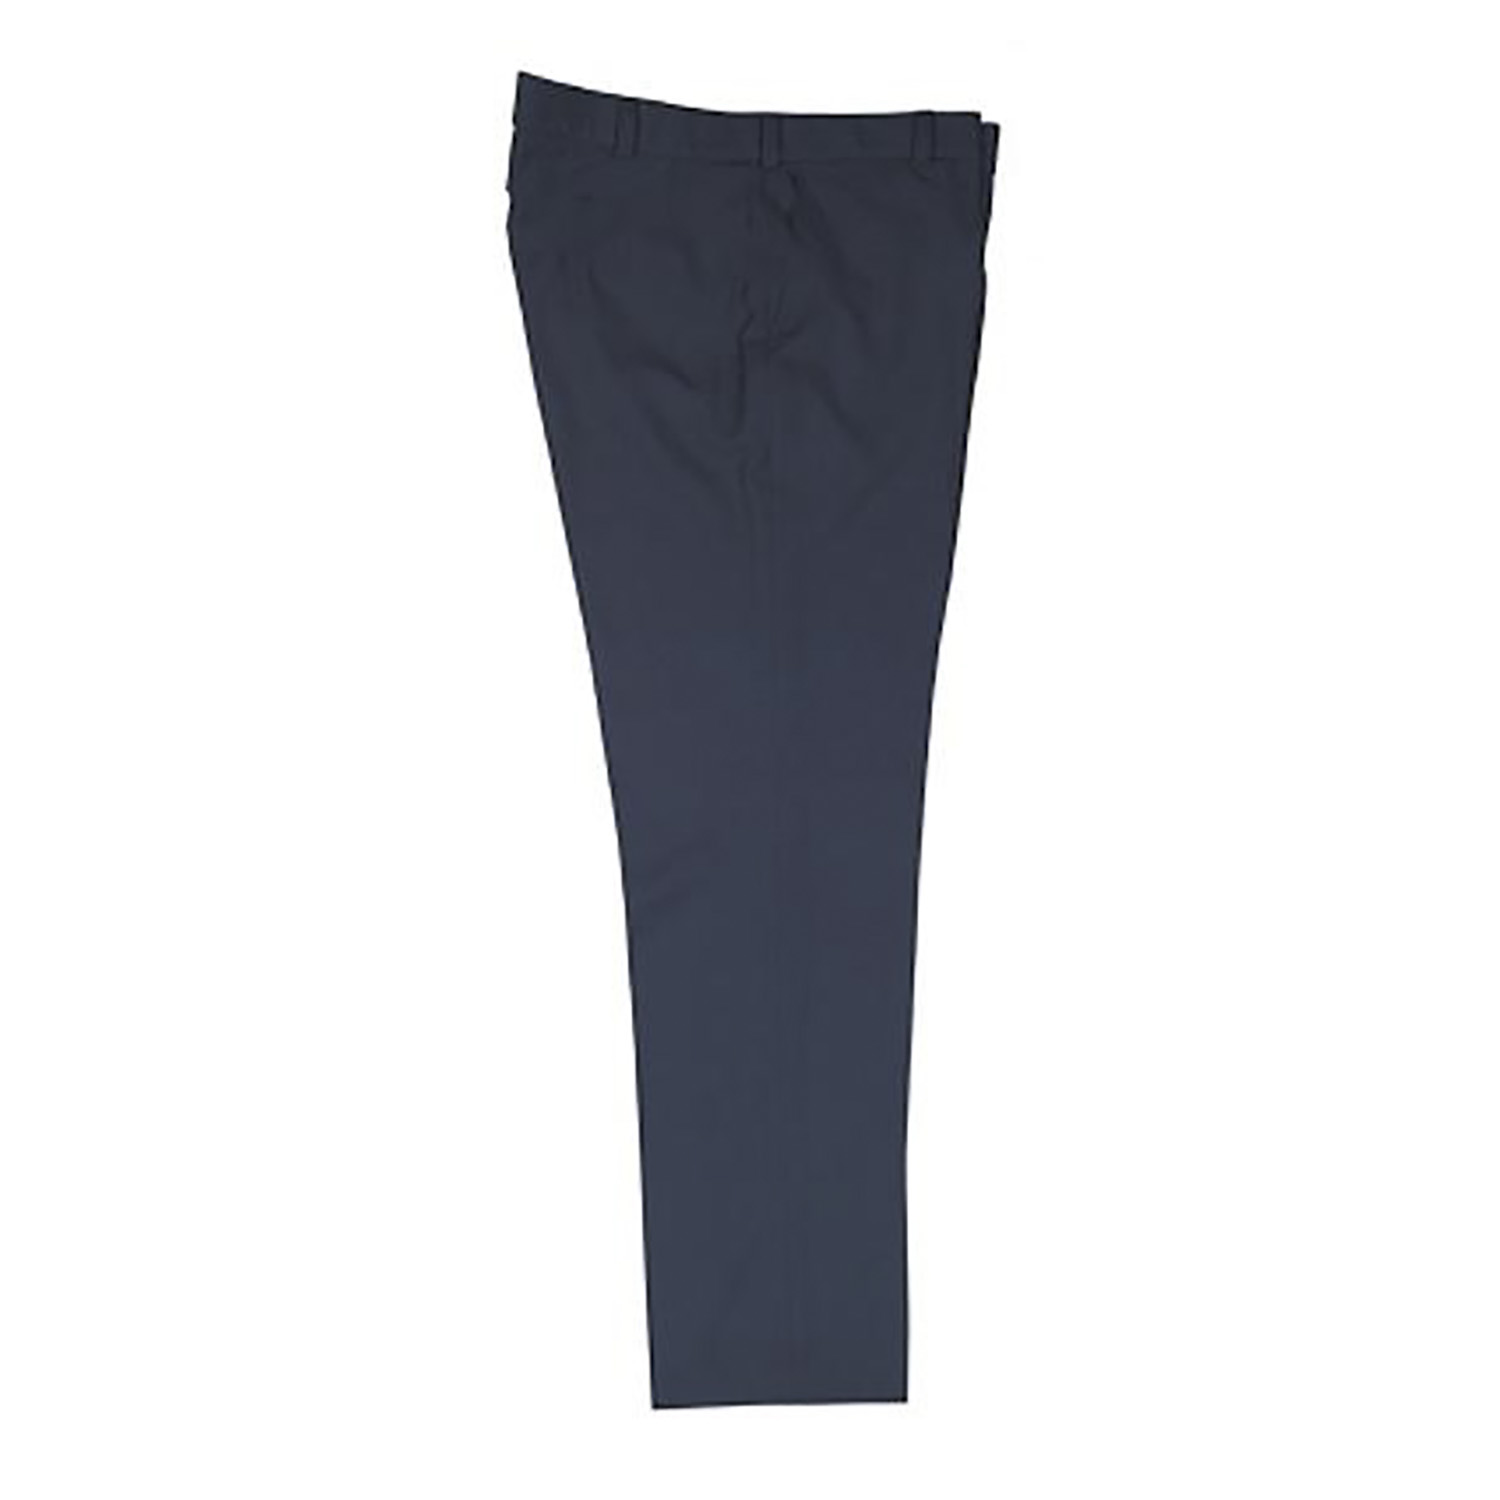 Anchor Uniform 230 Men's Class A Dress Trousers